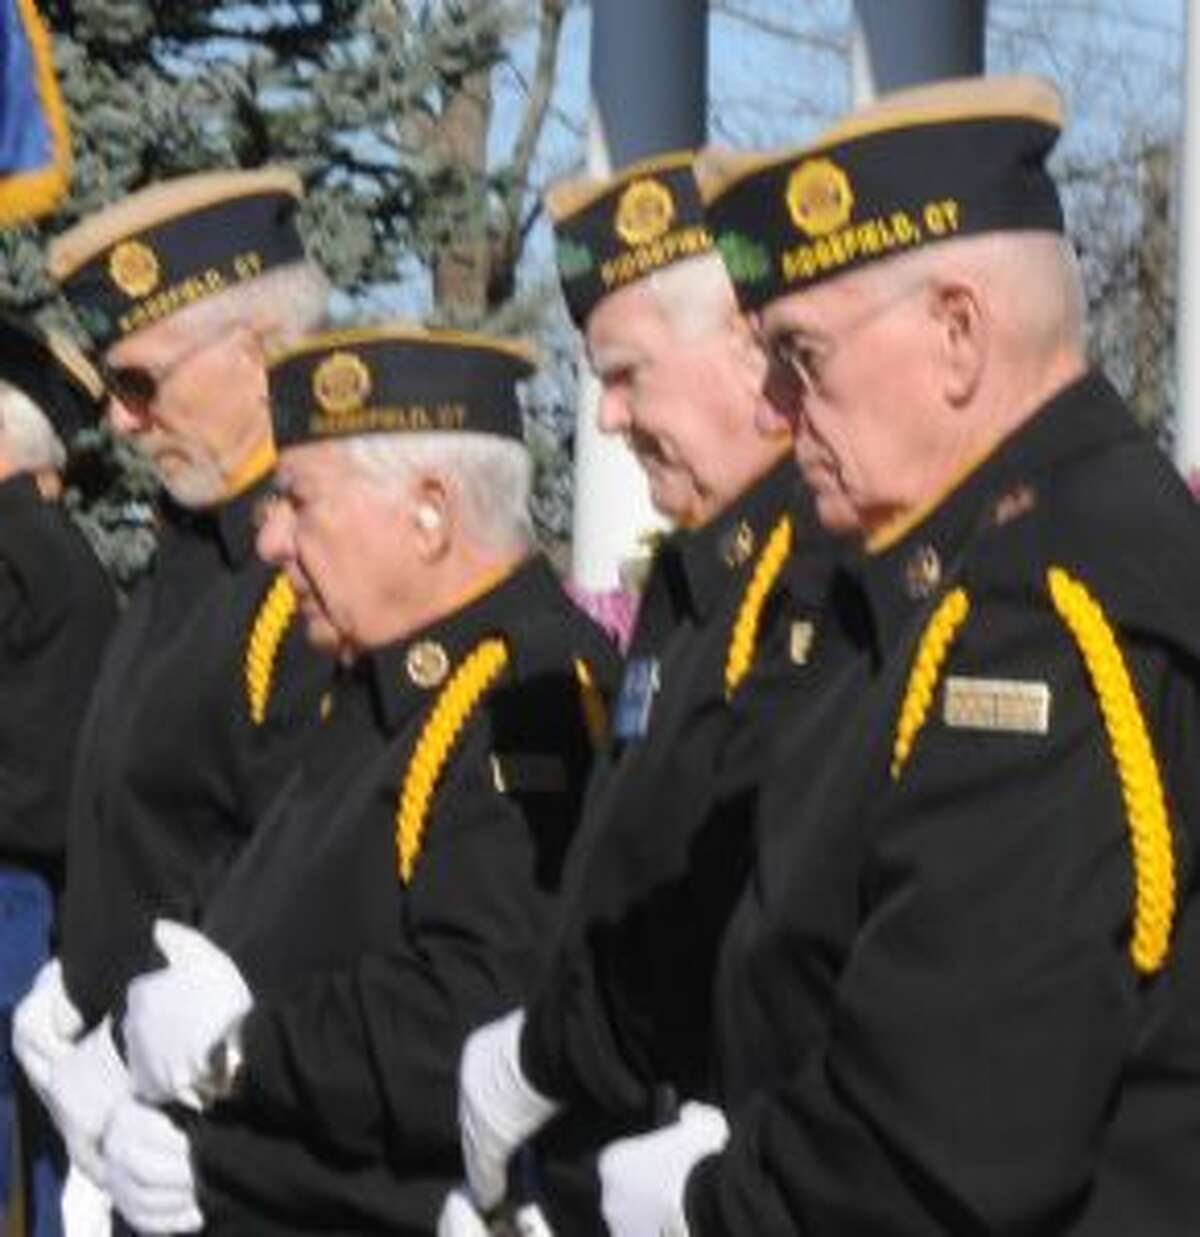 Veterans listened with bowed heads during ceremonies a the Community Center on Veterans Day 2018.